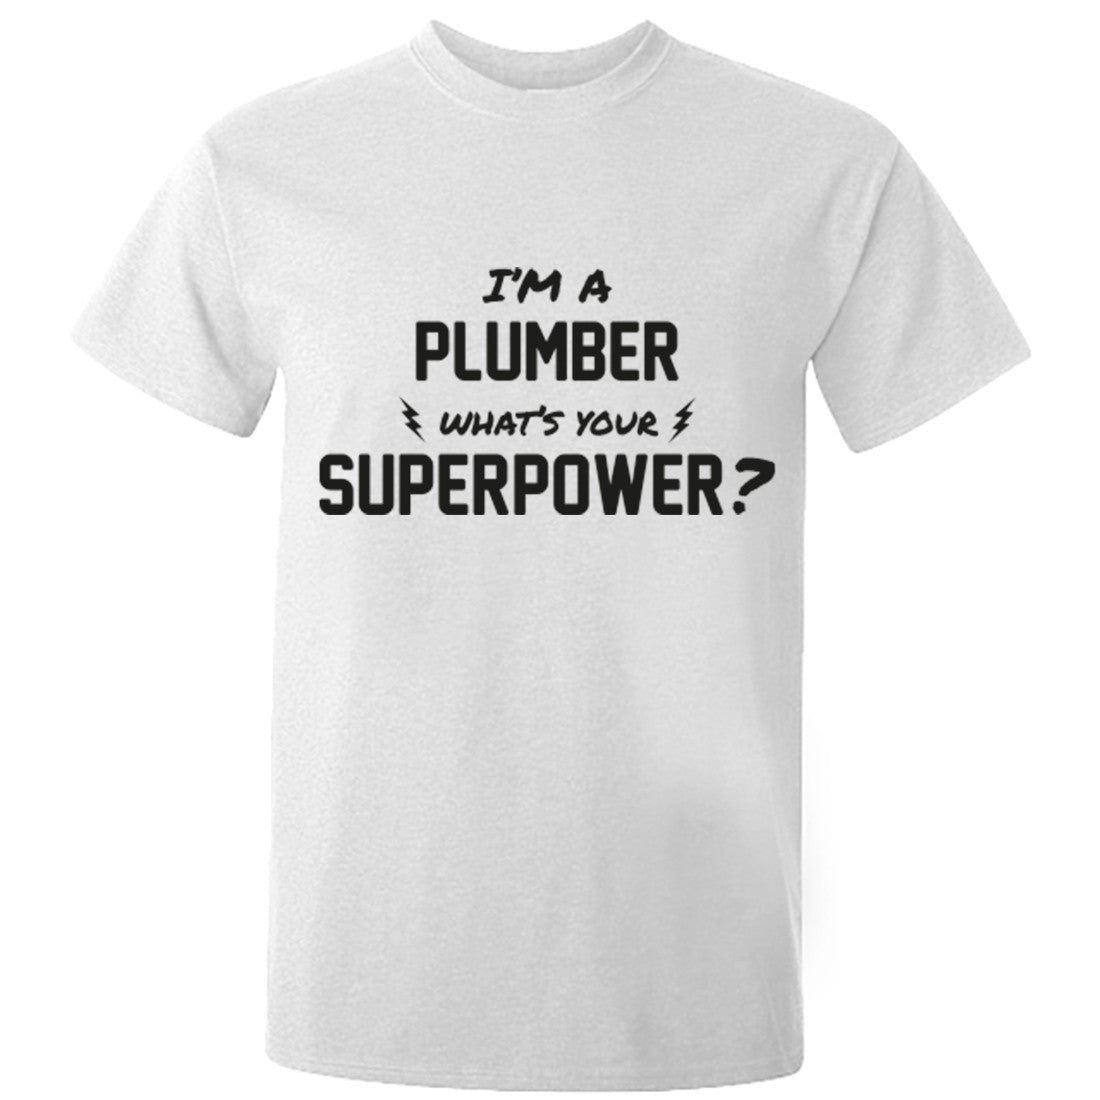 I'm A Plumber What's Your Superpower? Unisex Fit T-Shirt K0735 - Illustrated Identity Ltd.